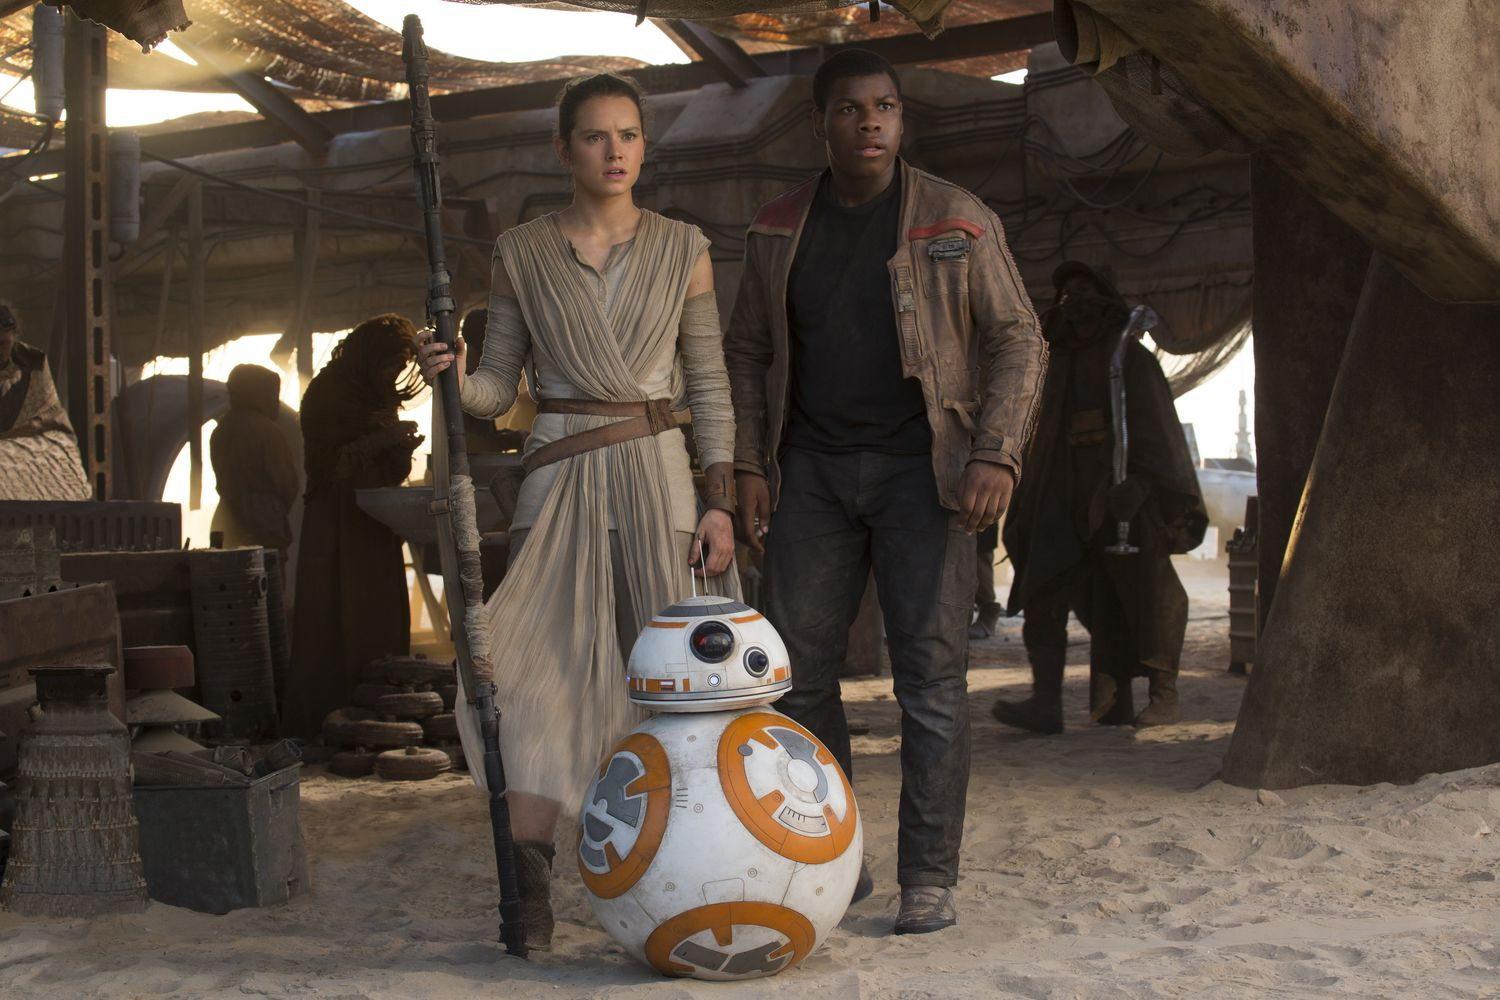 'Star Wars: Episode IX' won't be the last we'll see of Rey, Finn and Poe